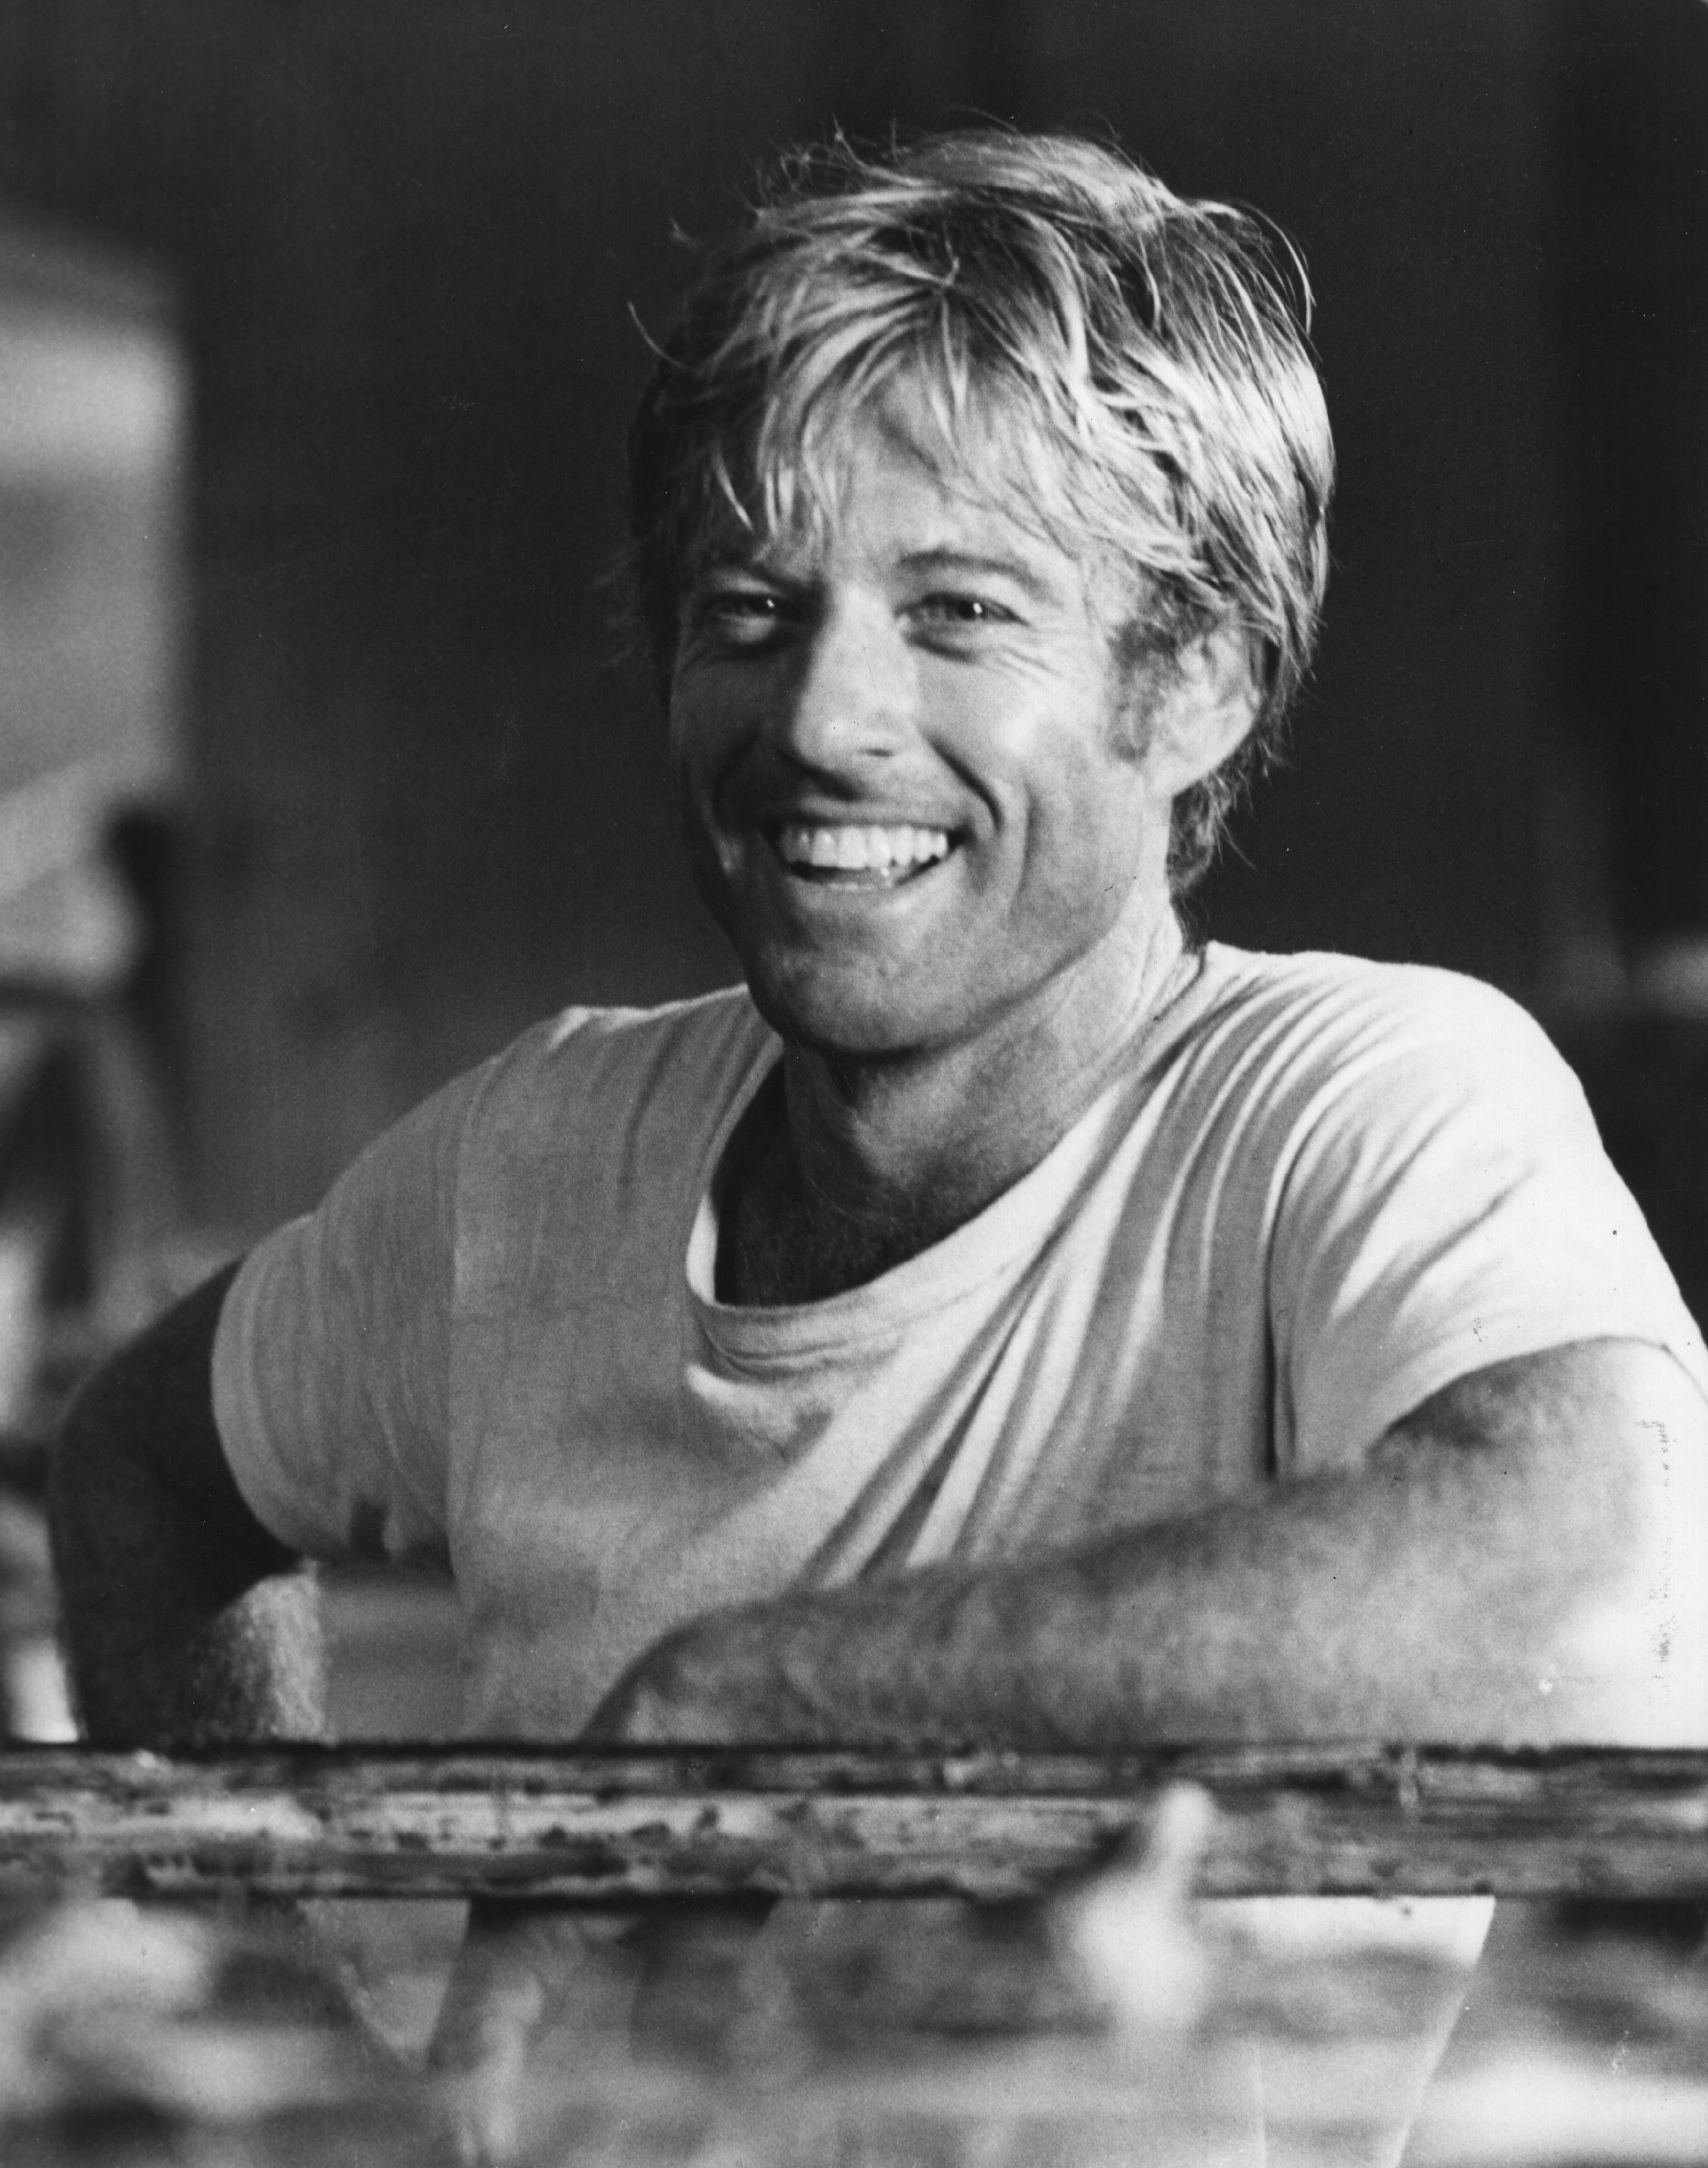 Robert Redford Quotes To Start Your Week - Thrillist